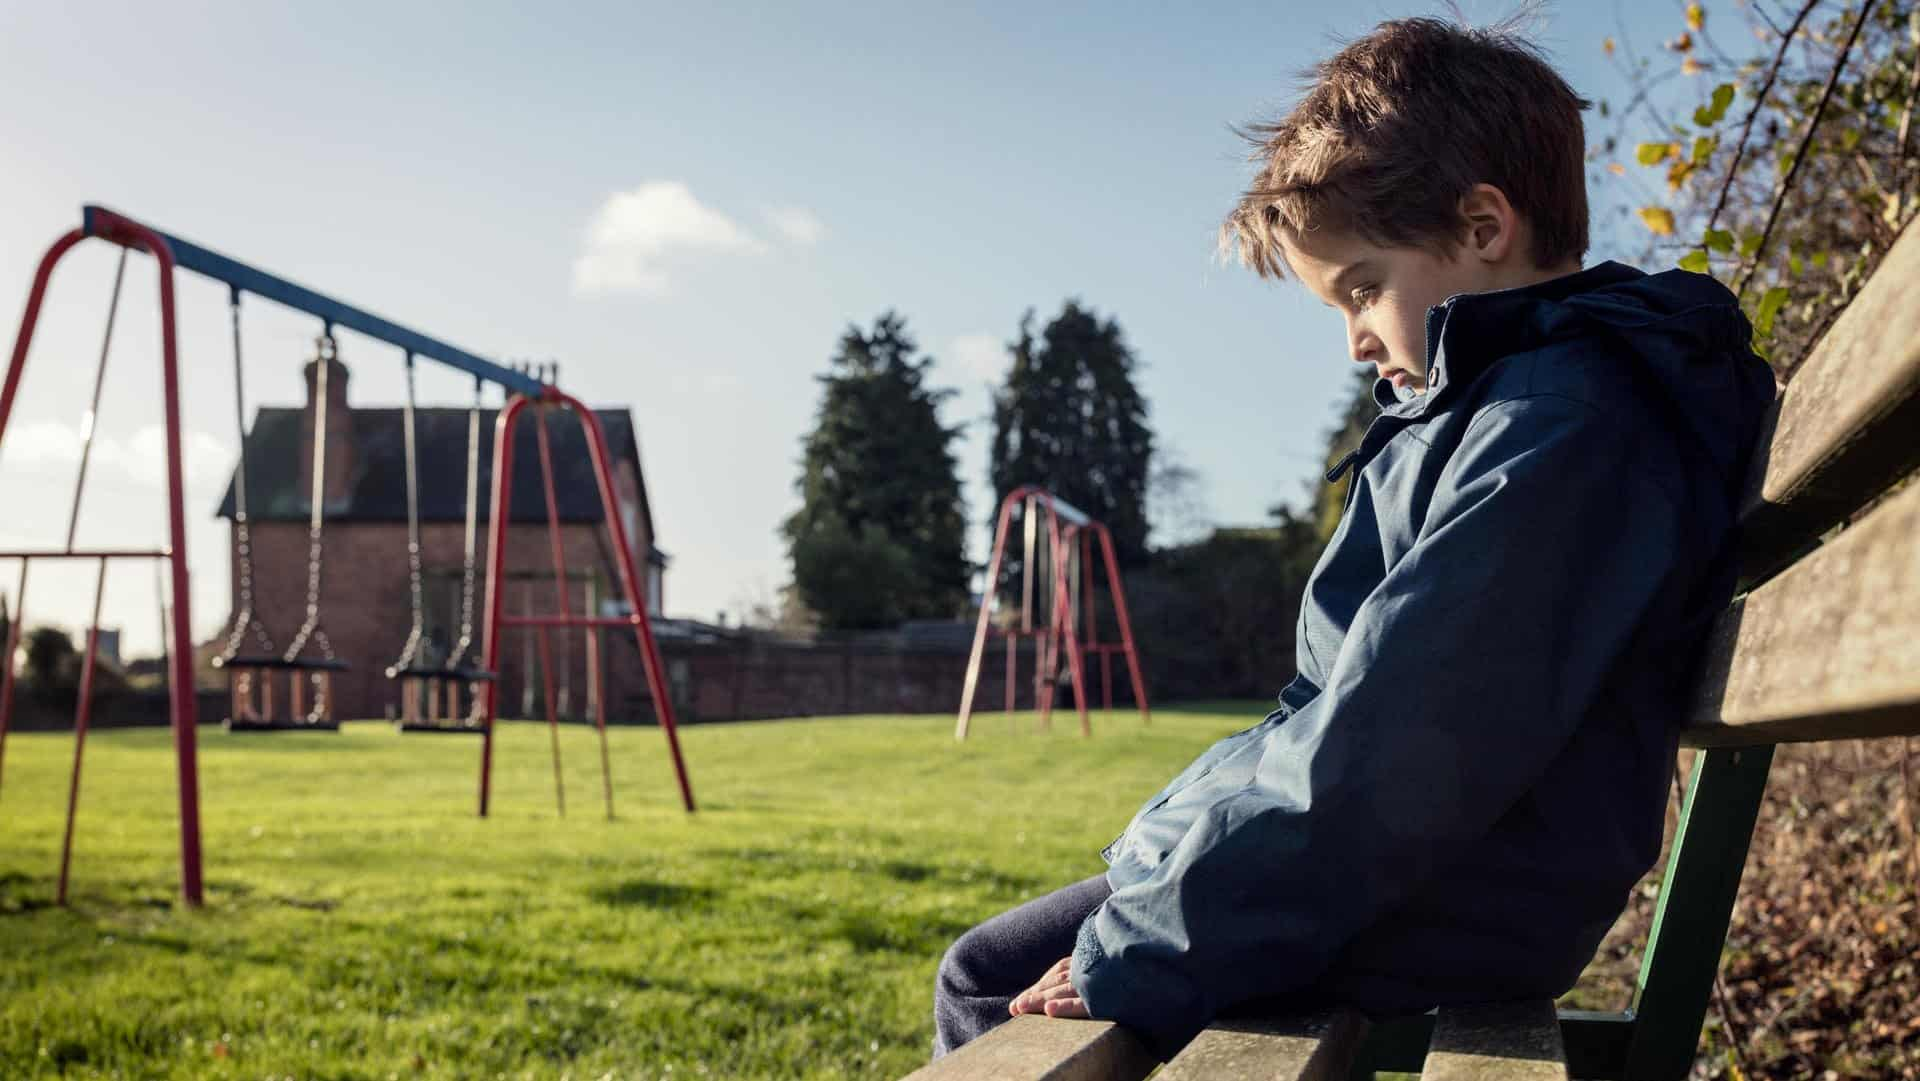 Children counselling and Adolescent Counselling Safe Place Therapy